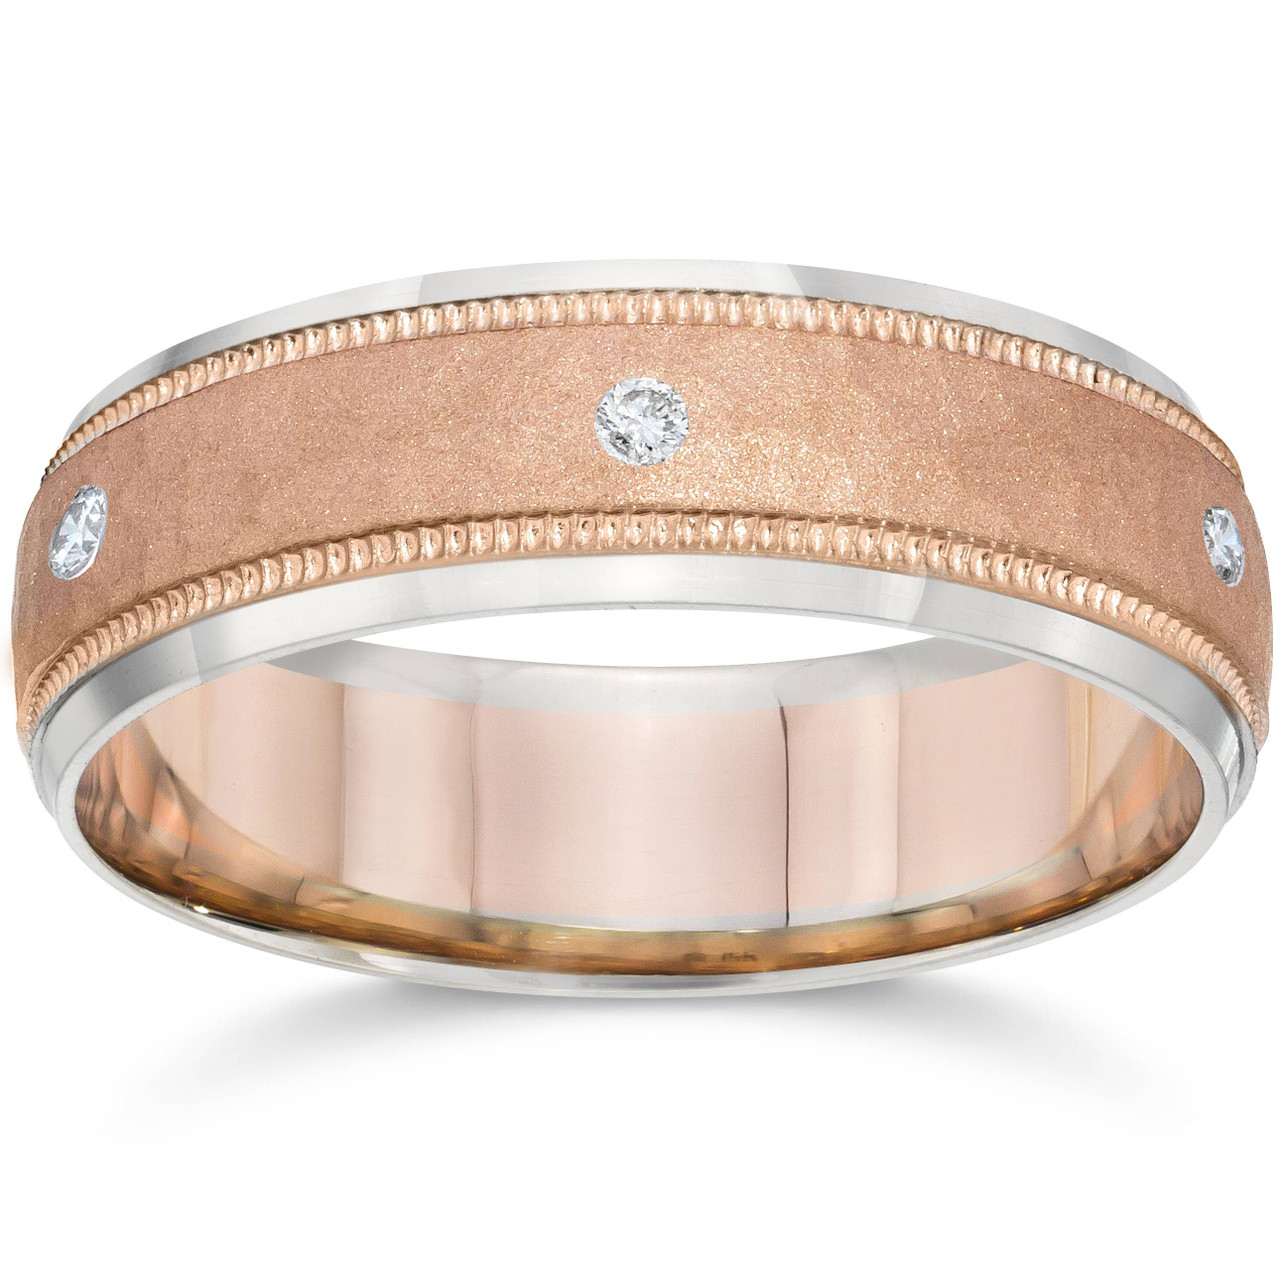 Mens Rose Gold Wedding Band.Mens Diamond 14k Rose White Gold Hammered Two Tone Wedding Band G H Si2